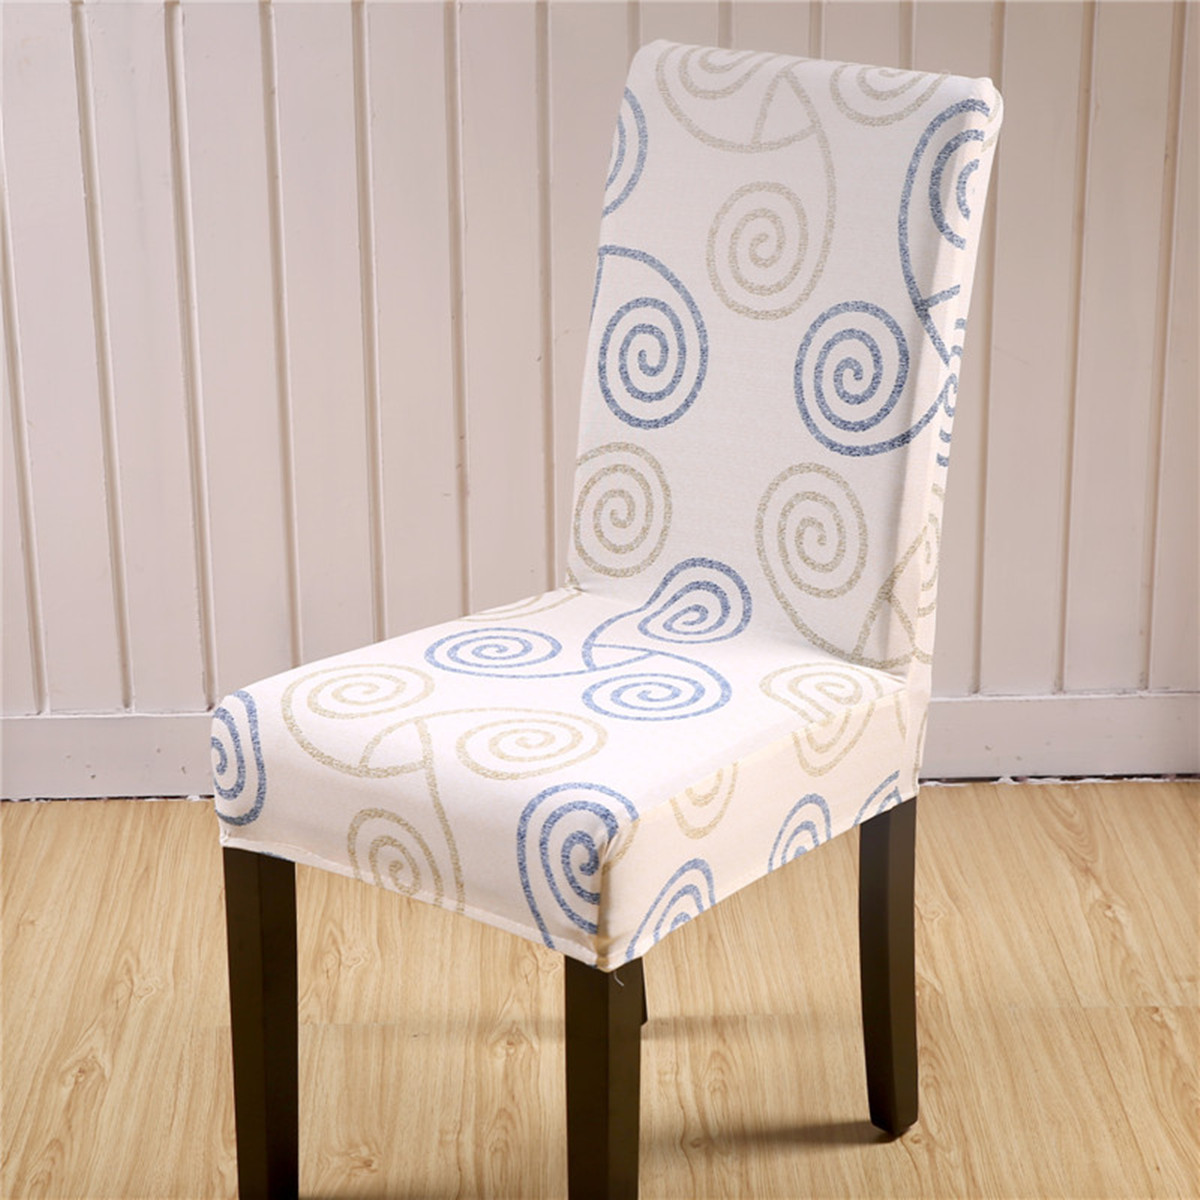 chair seat covers with elastic french reproduction dining chairs floral cover room wedding banquet